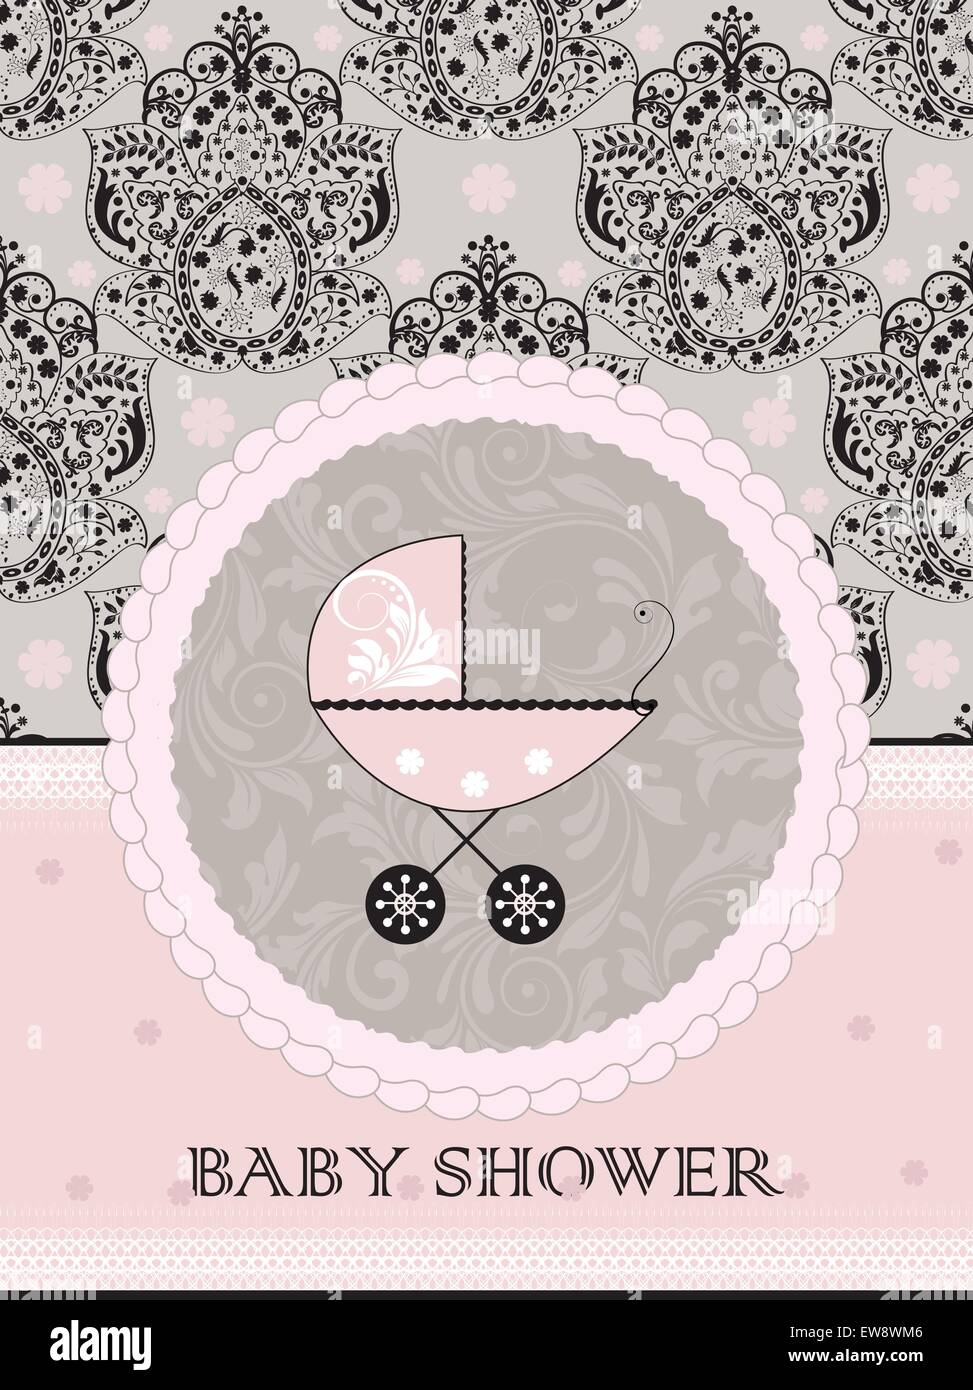 vintage baby shower invitation card with ornate elegant abstract